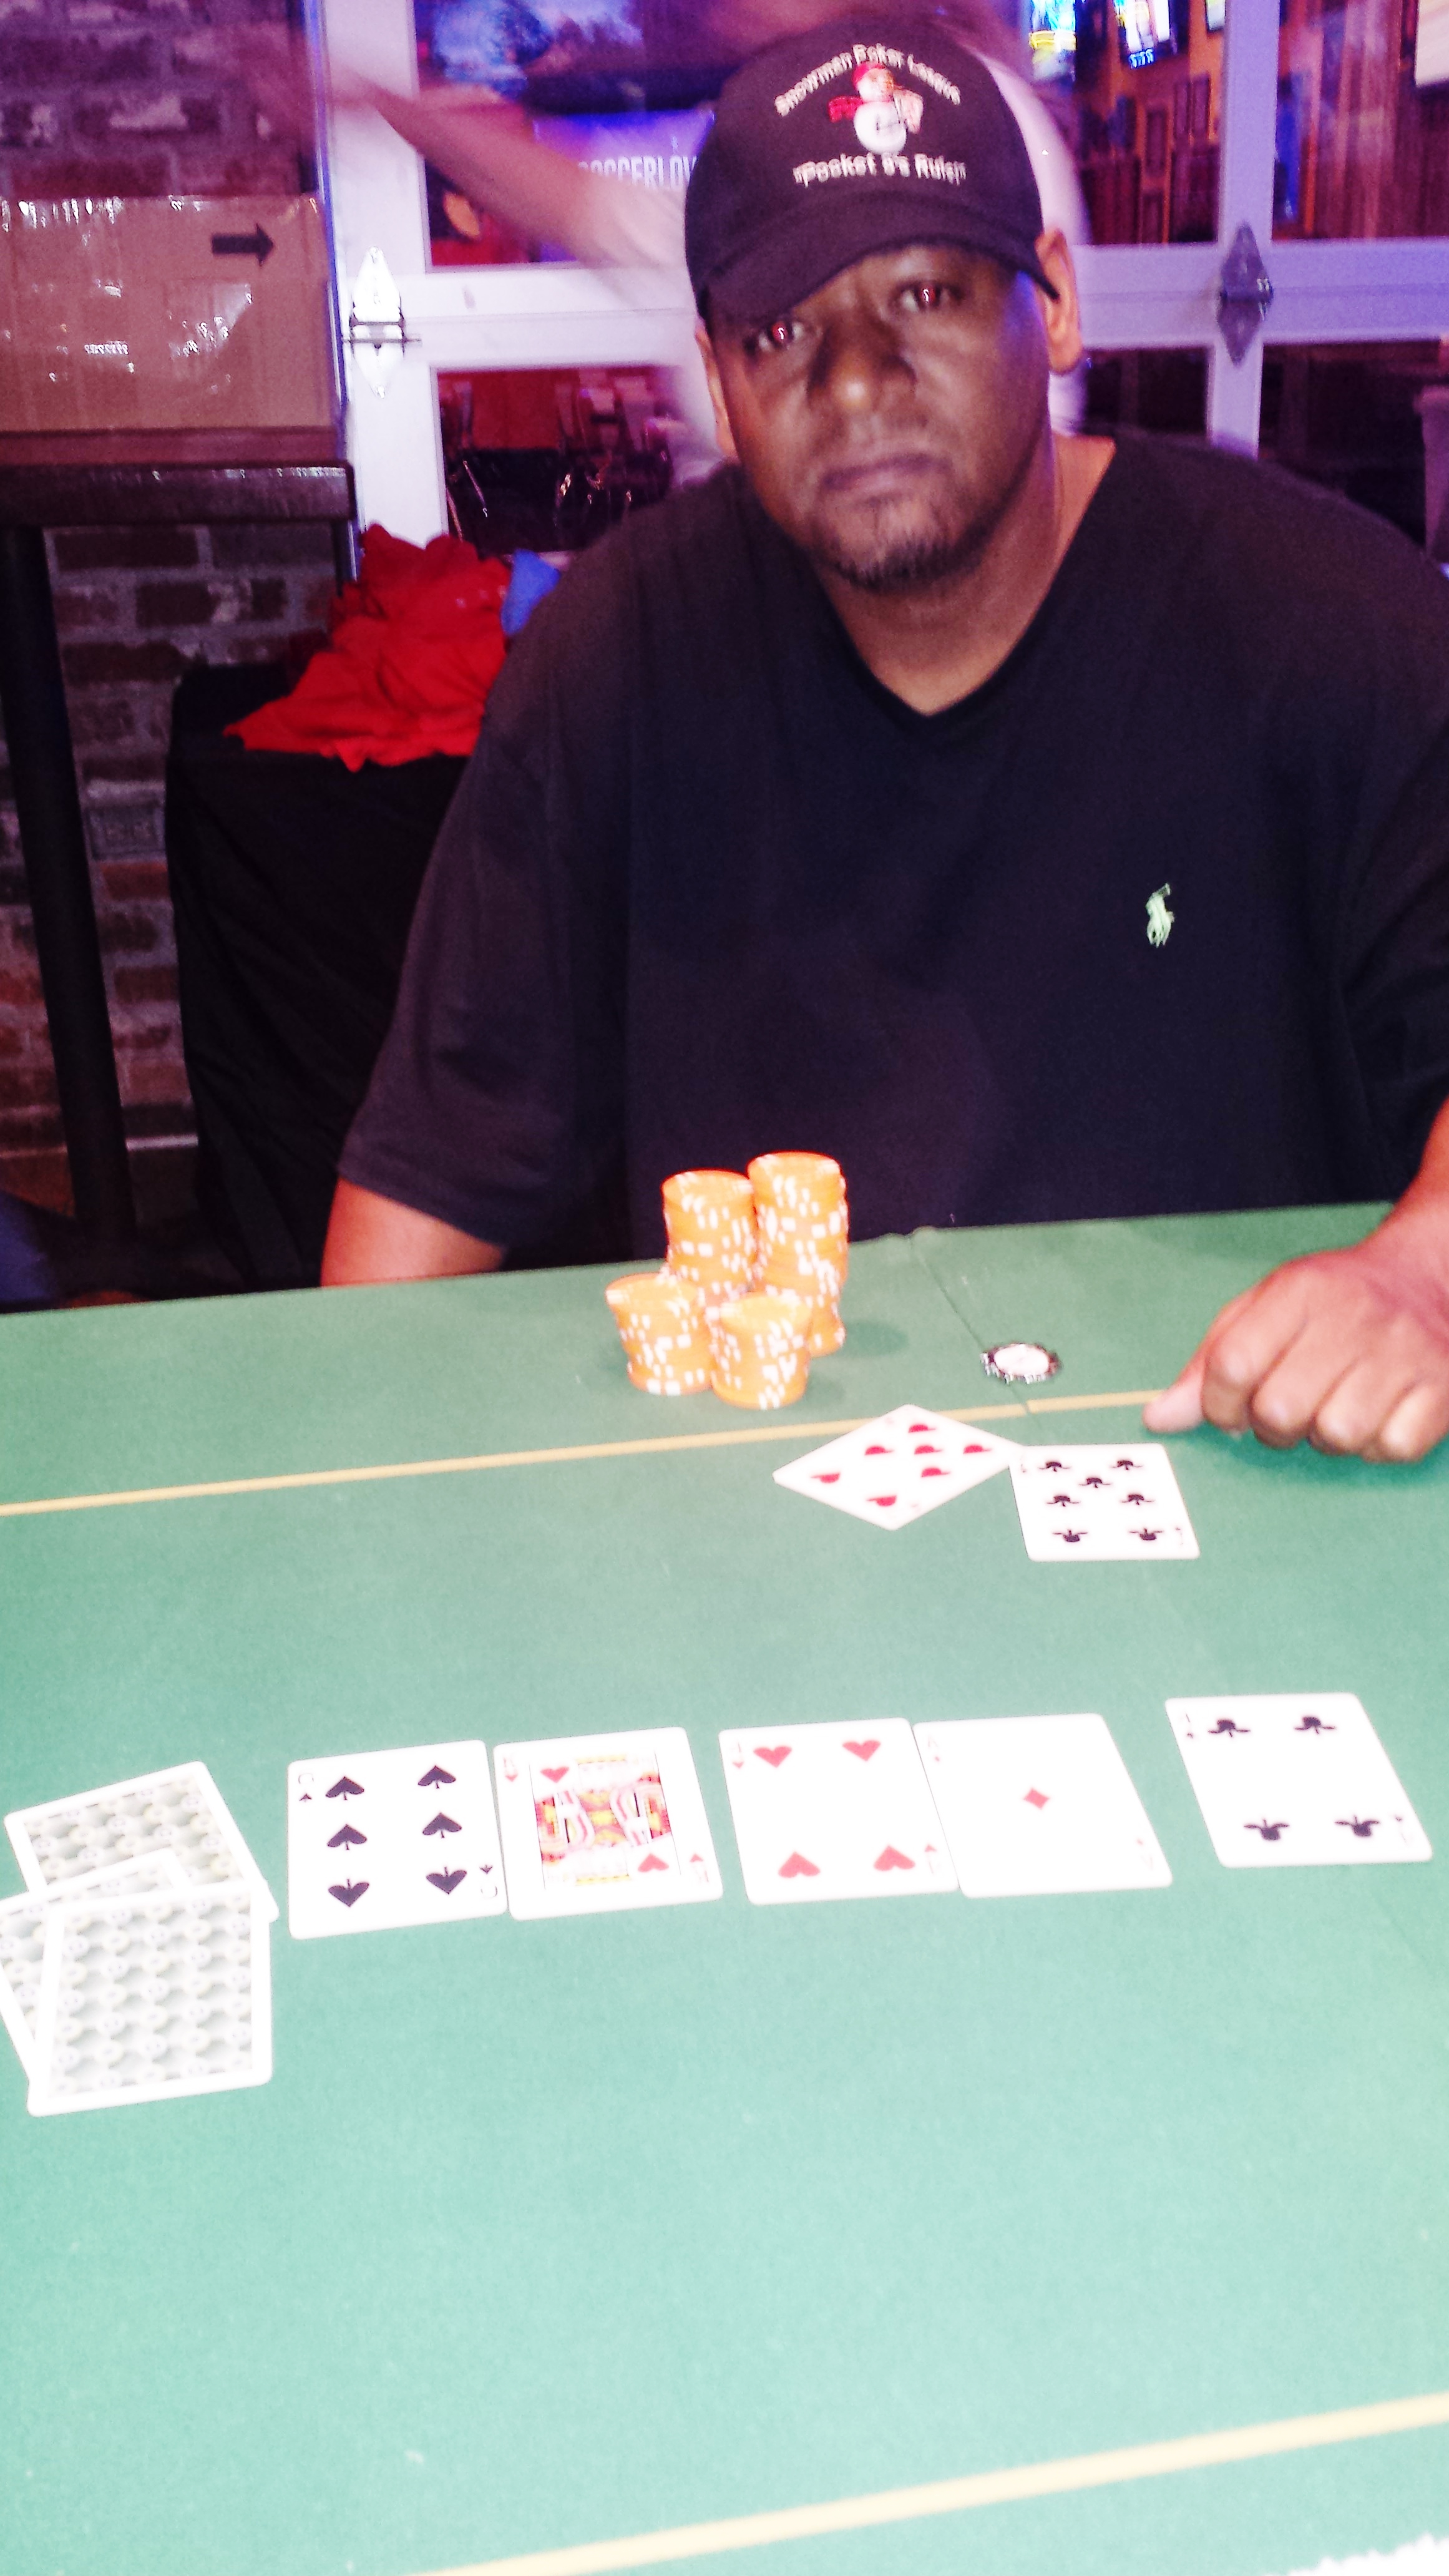 Poker and charity